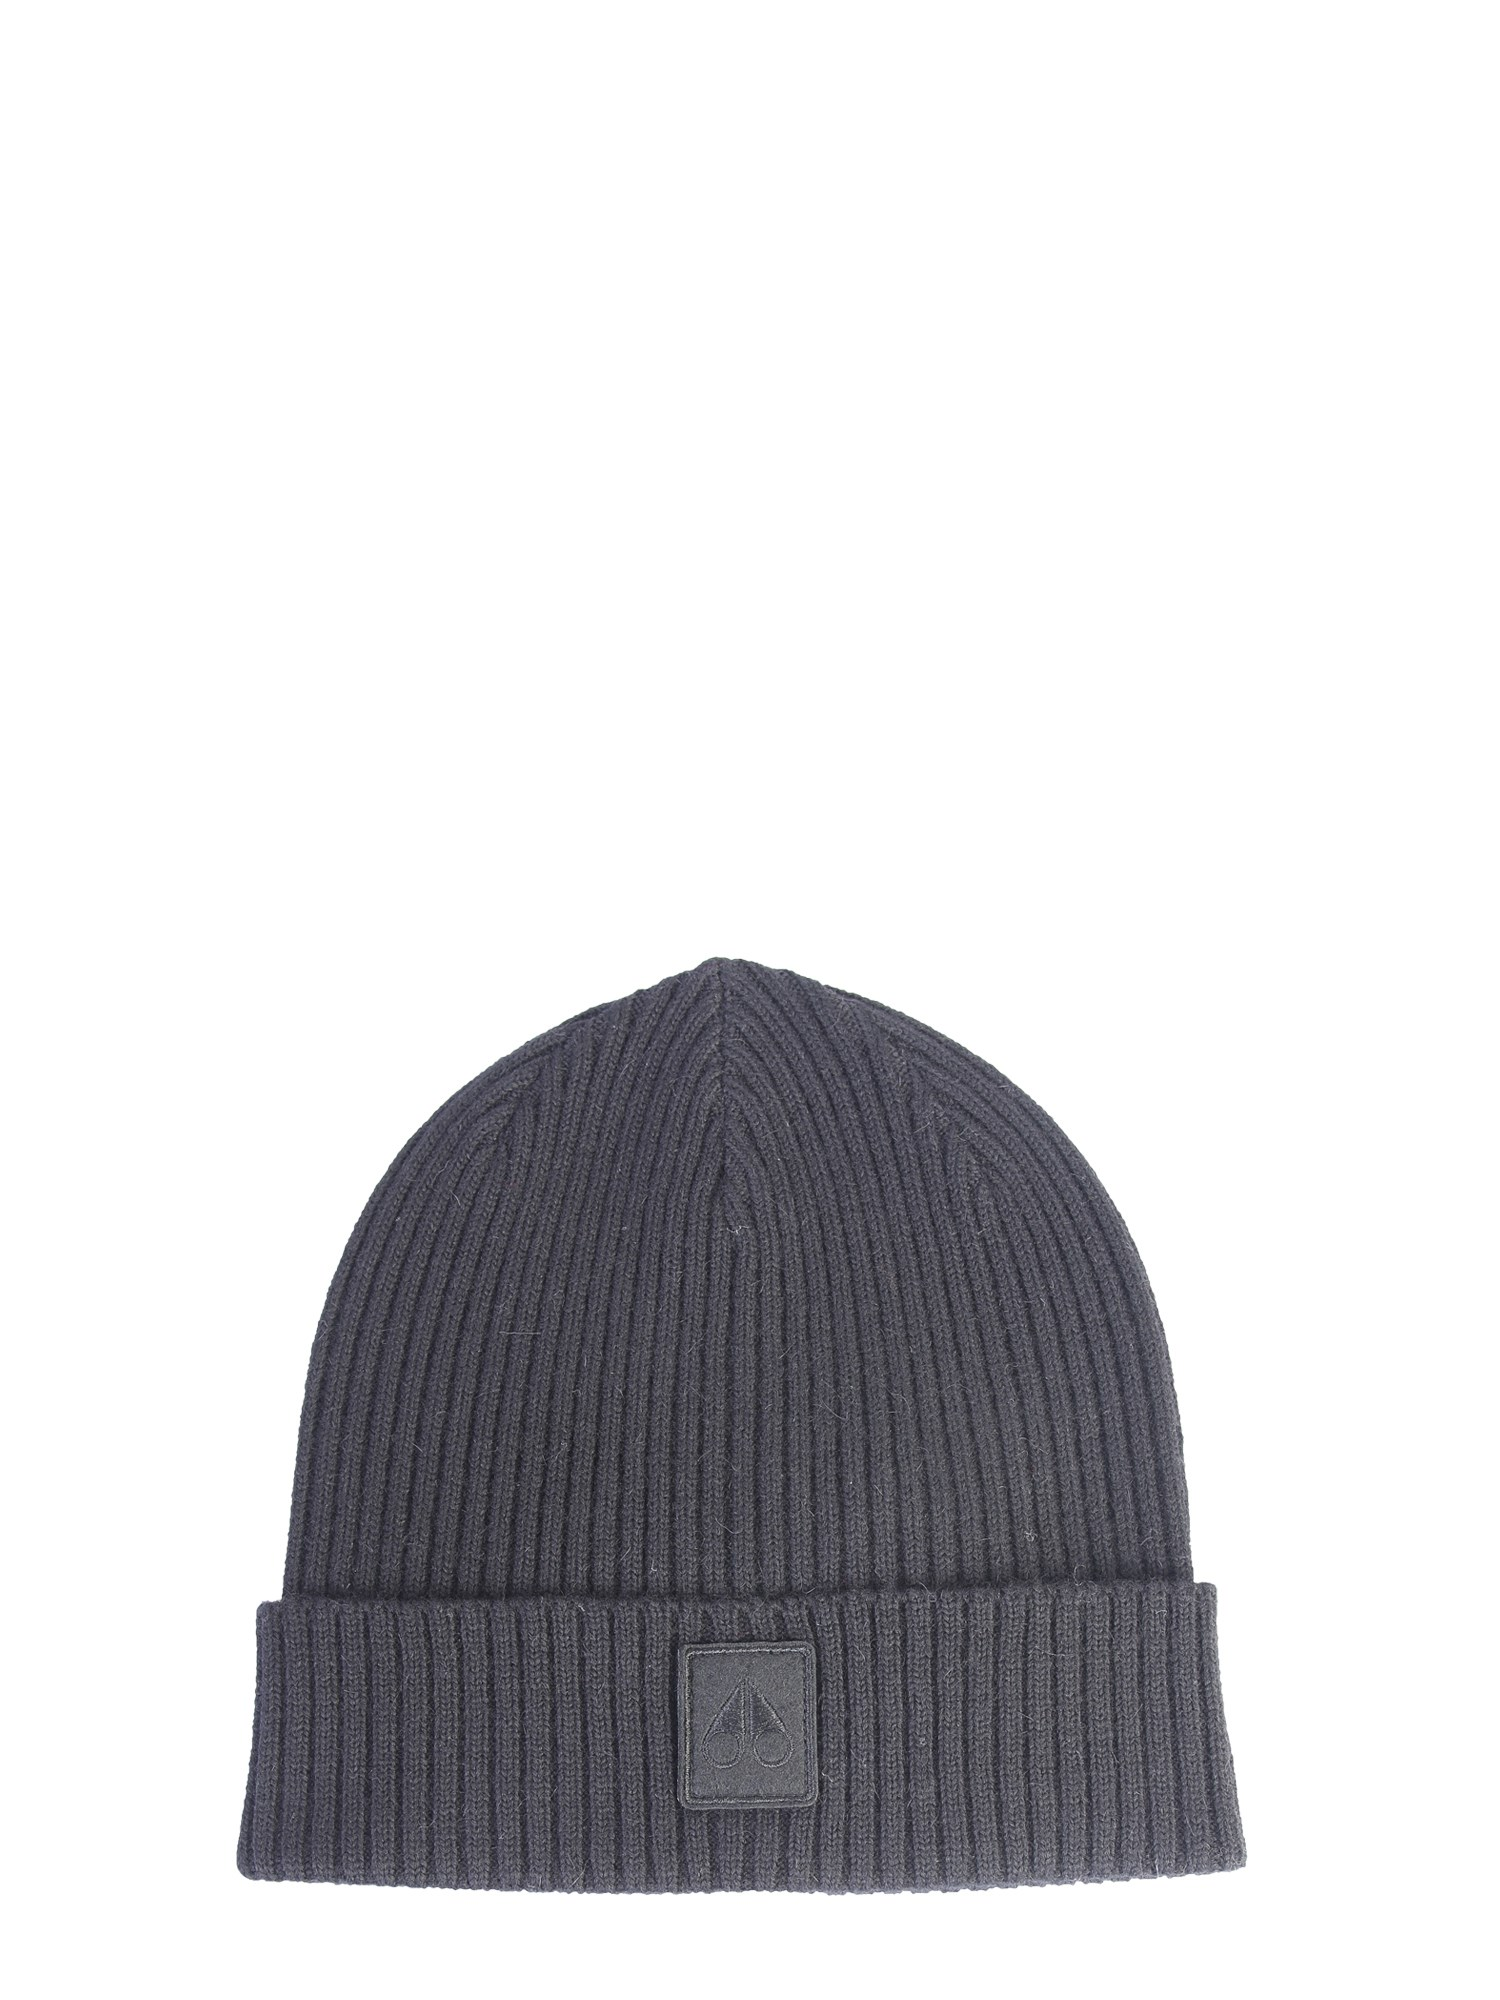 Moose Knuckles Beanys CAPPELLO IN MAGLIA